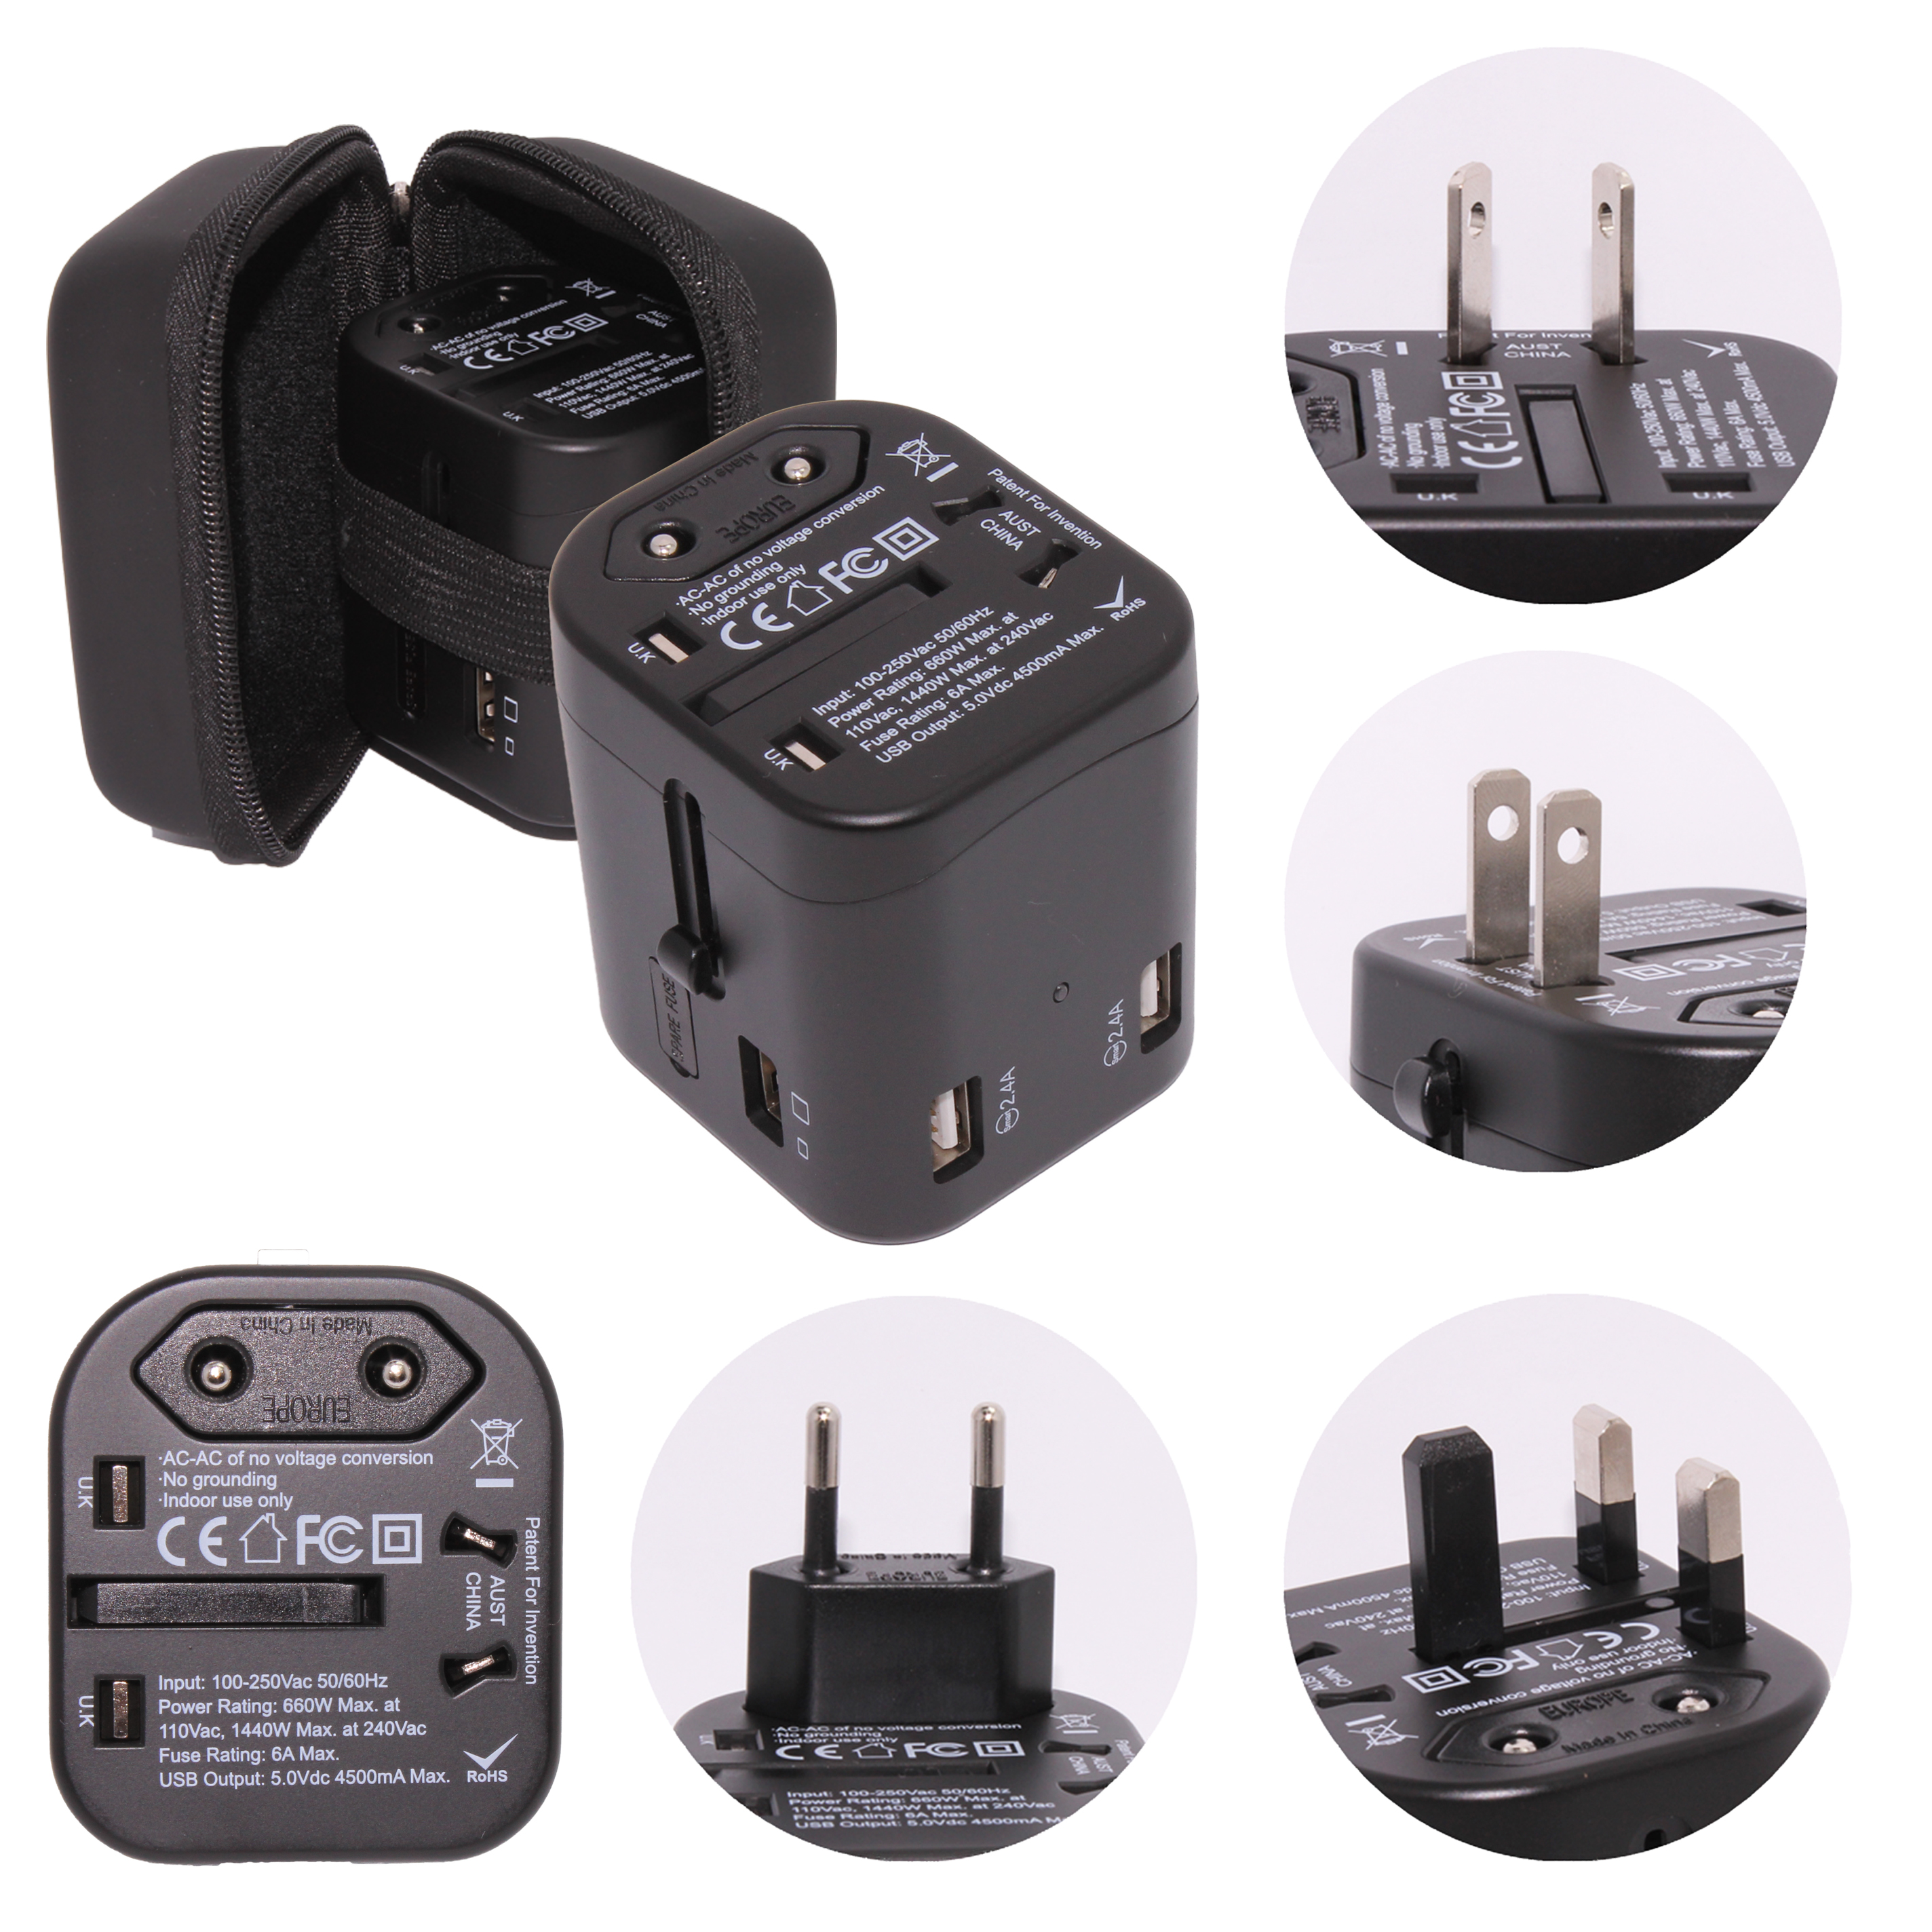 Universal Travel Adapter with 4 USB Port 4500mA MAX and Built-in Multi-plugs for USA | UK | AUS | EUR Includes Hard Bound Case